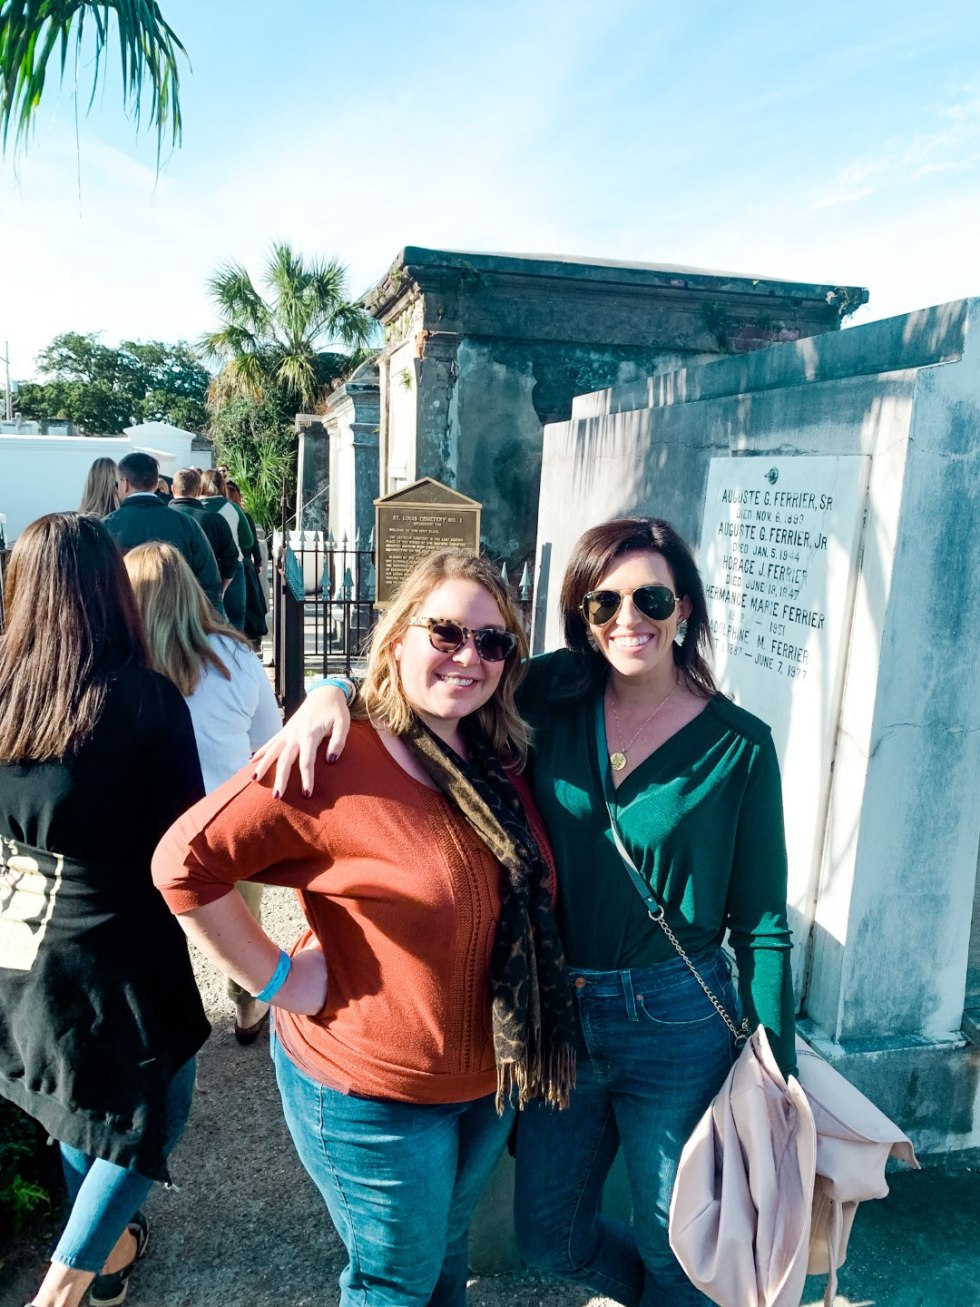 A Girls Trip to New Orleans: All the Info you Need to Prepare! - I'm Fixin' To - @mbg0112 | Girls Trip to New Orleans by popular US travel blog, I'm Fixin To: image of St. Louis #1 Cemetery.